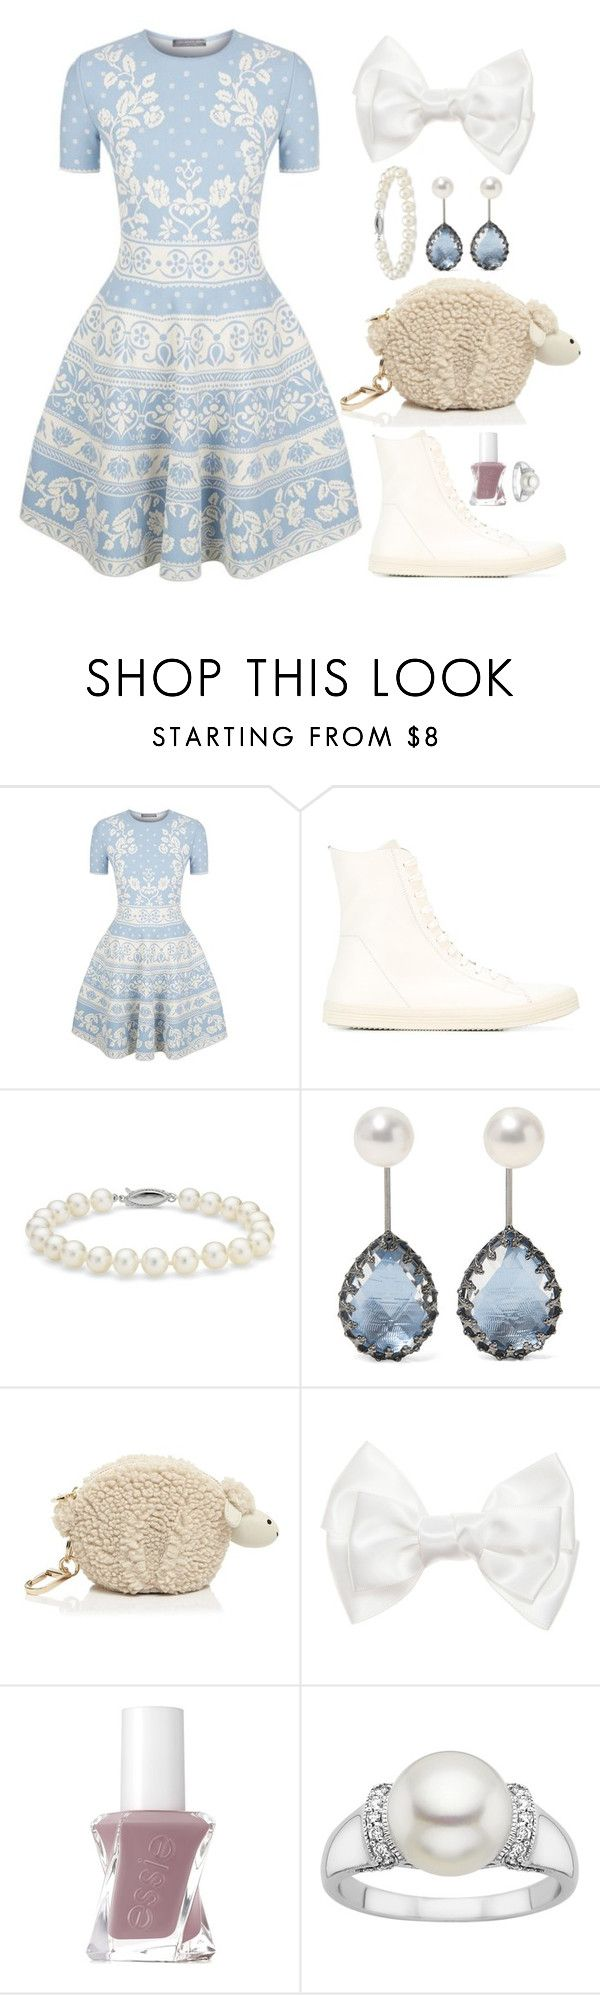 """""""Sweet Sheep"""" by theoctopusjar ❤ liked on Polyvore featuring Alexander McQueen, Rick Owens, Blue Nile, Larkspur & Hawk, Tory Burch and Essie"""